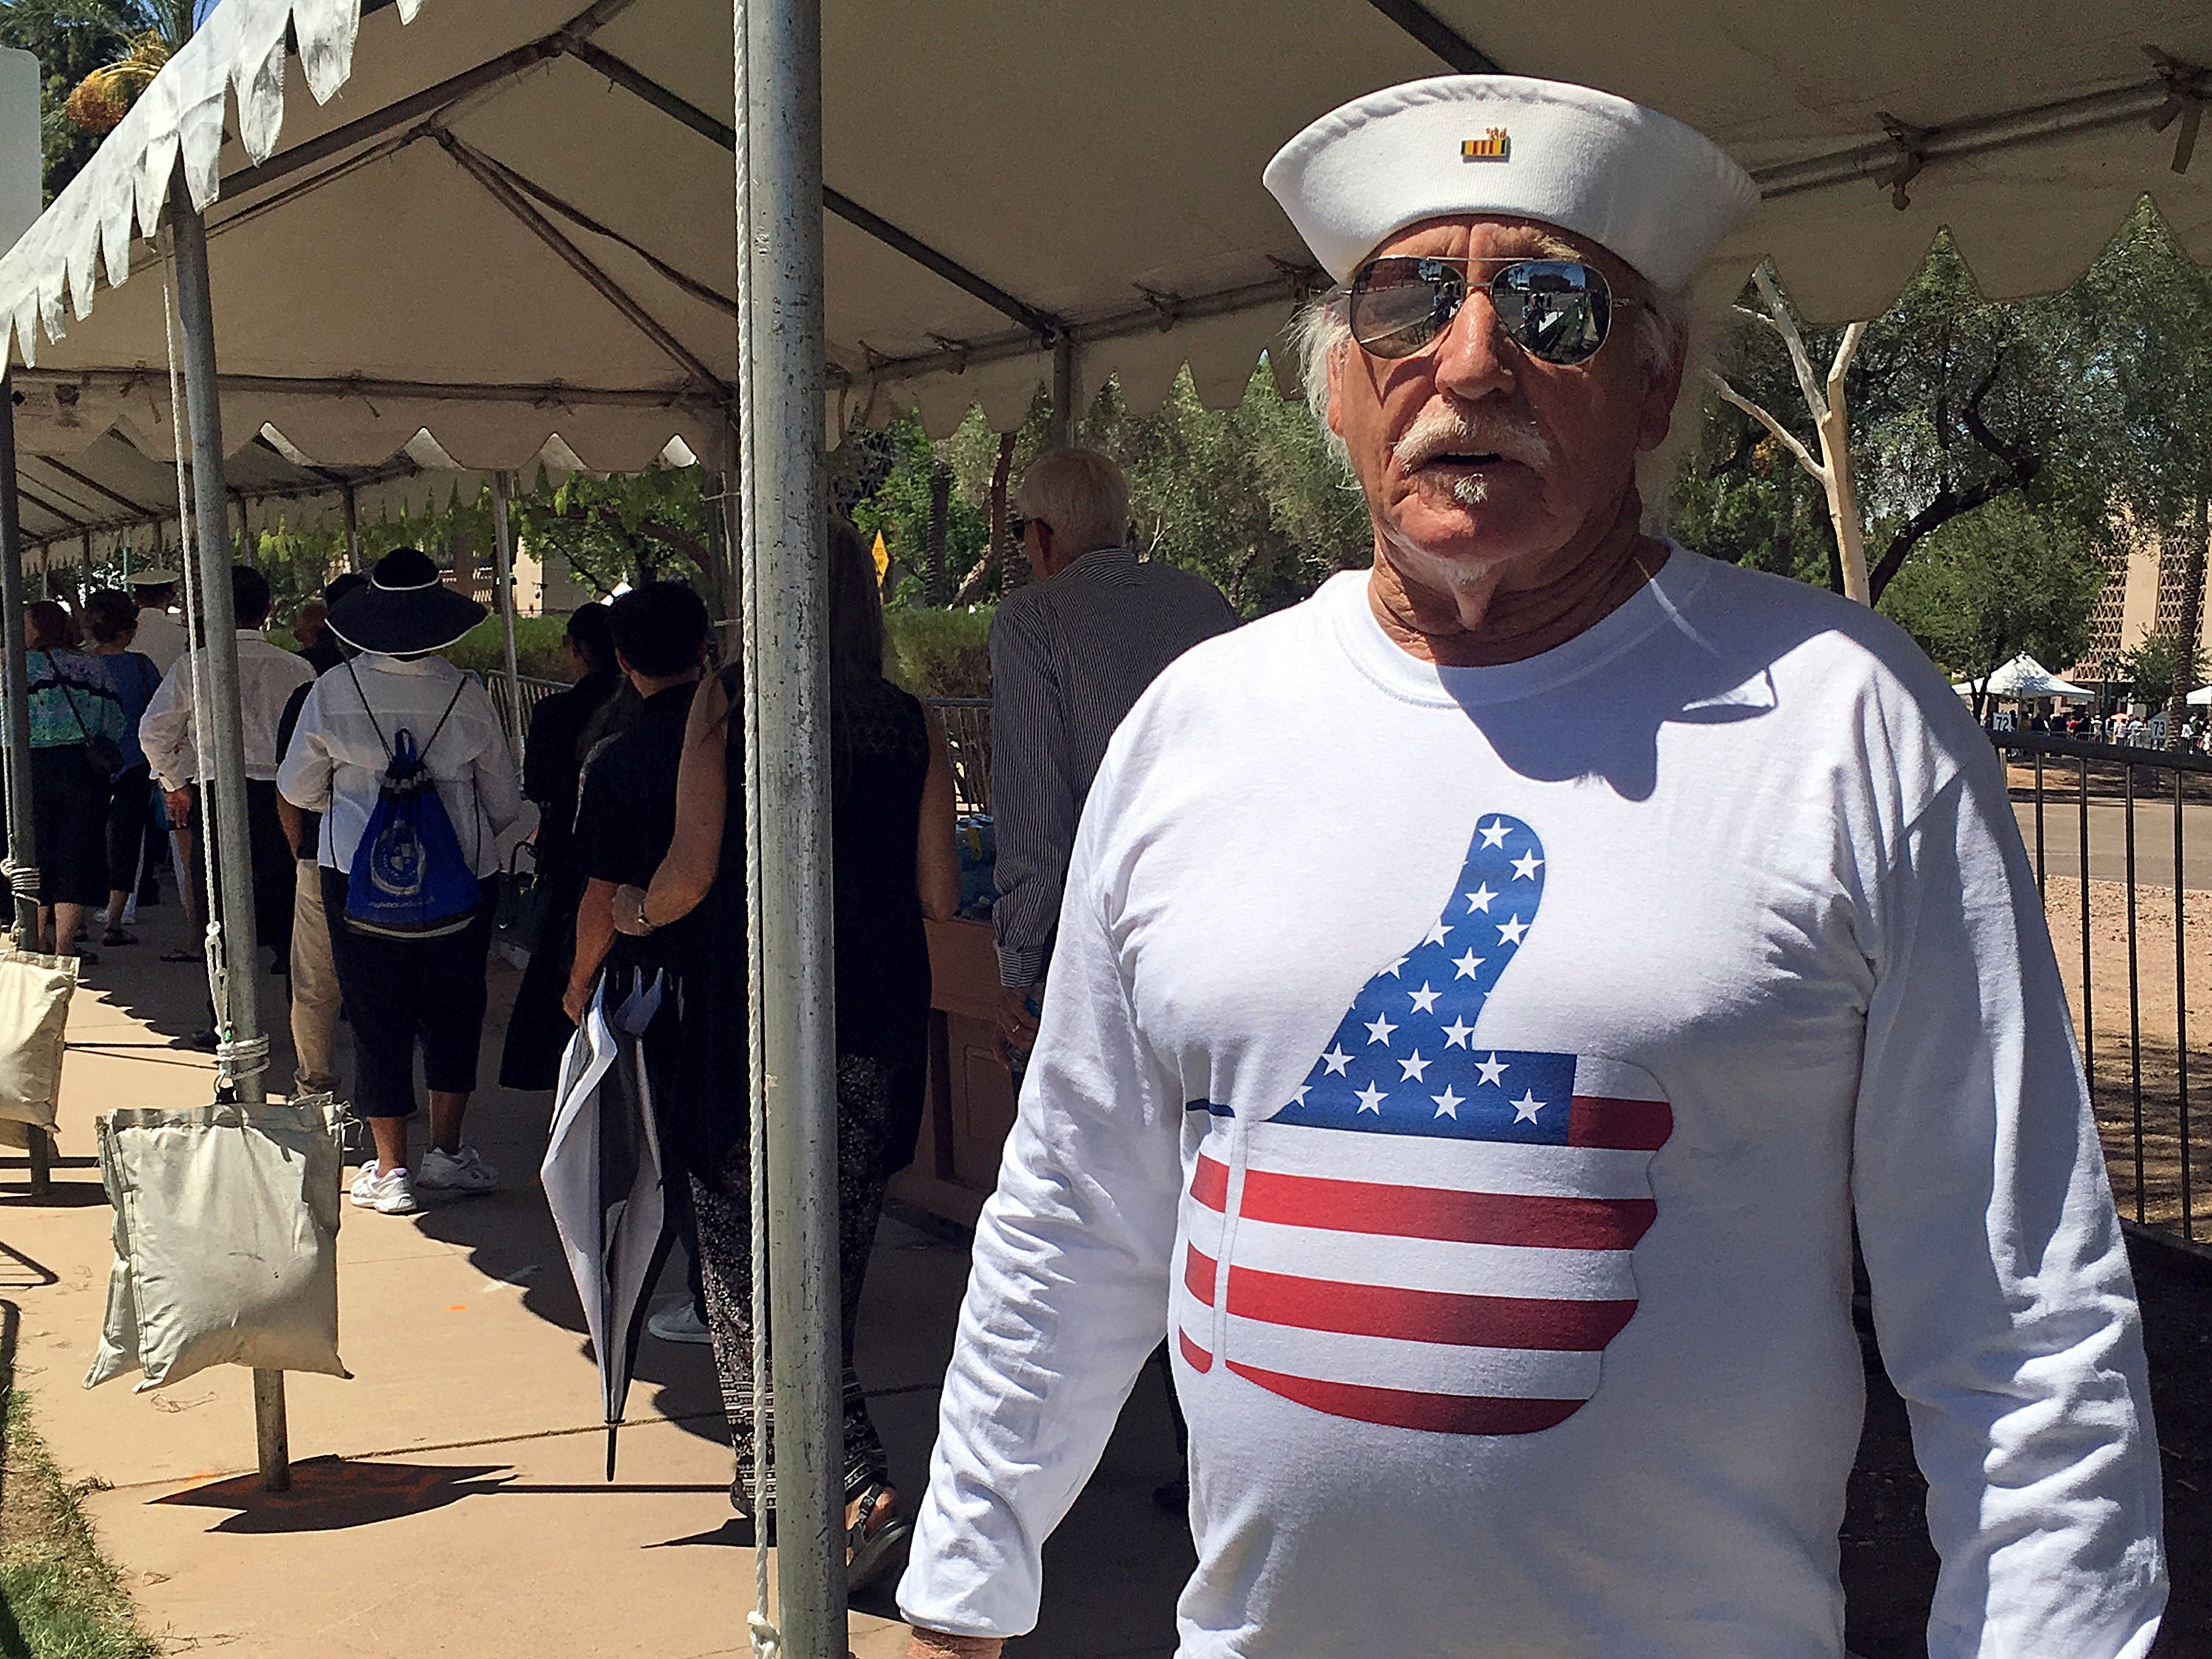 Louis Albin, an artist in Phoenix and Navy veteran, displays his custom-made T-shirt as he waits in line for the public viewing of the late Sen. John McCain Aug. 29, 2018, outside the Arizona Capitol. The shirt, which features an image of a thumbs-up covered in the stars and stripes of the flag, is a play on McCain's thumb-down vote that sank President Donald Trump's repeal of the Affordable Care Act. Albin turned the thumb up as a wink to McCain's vote, which Albin approved of.